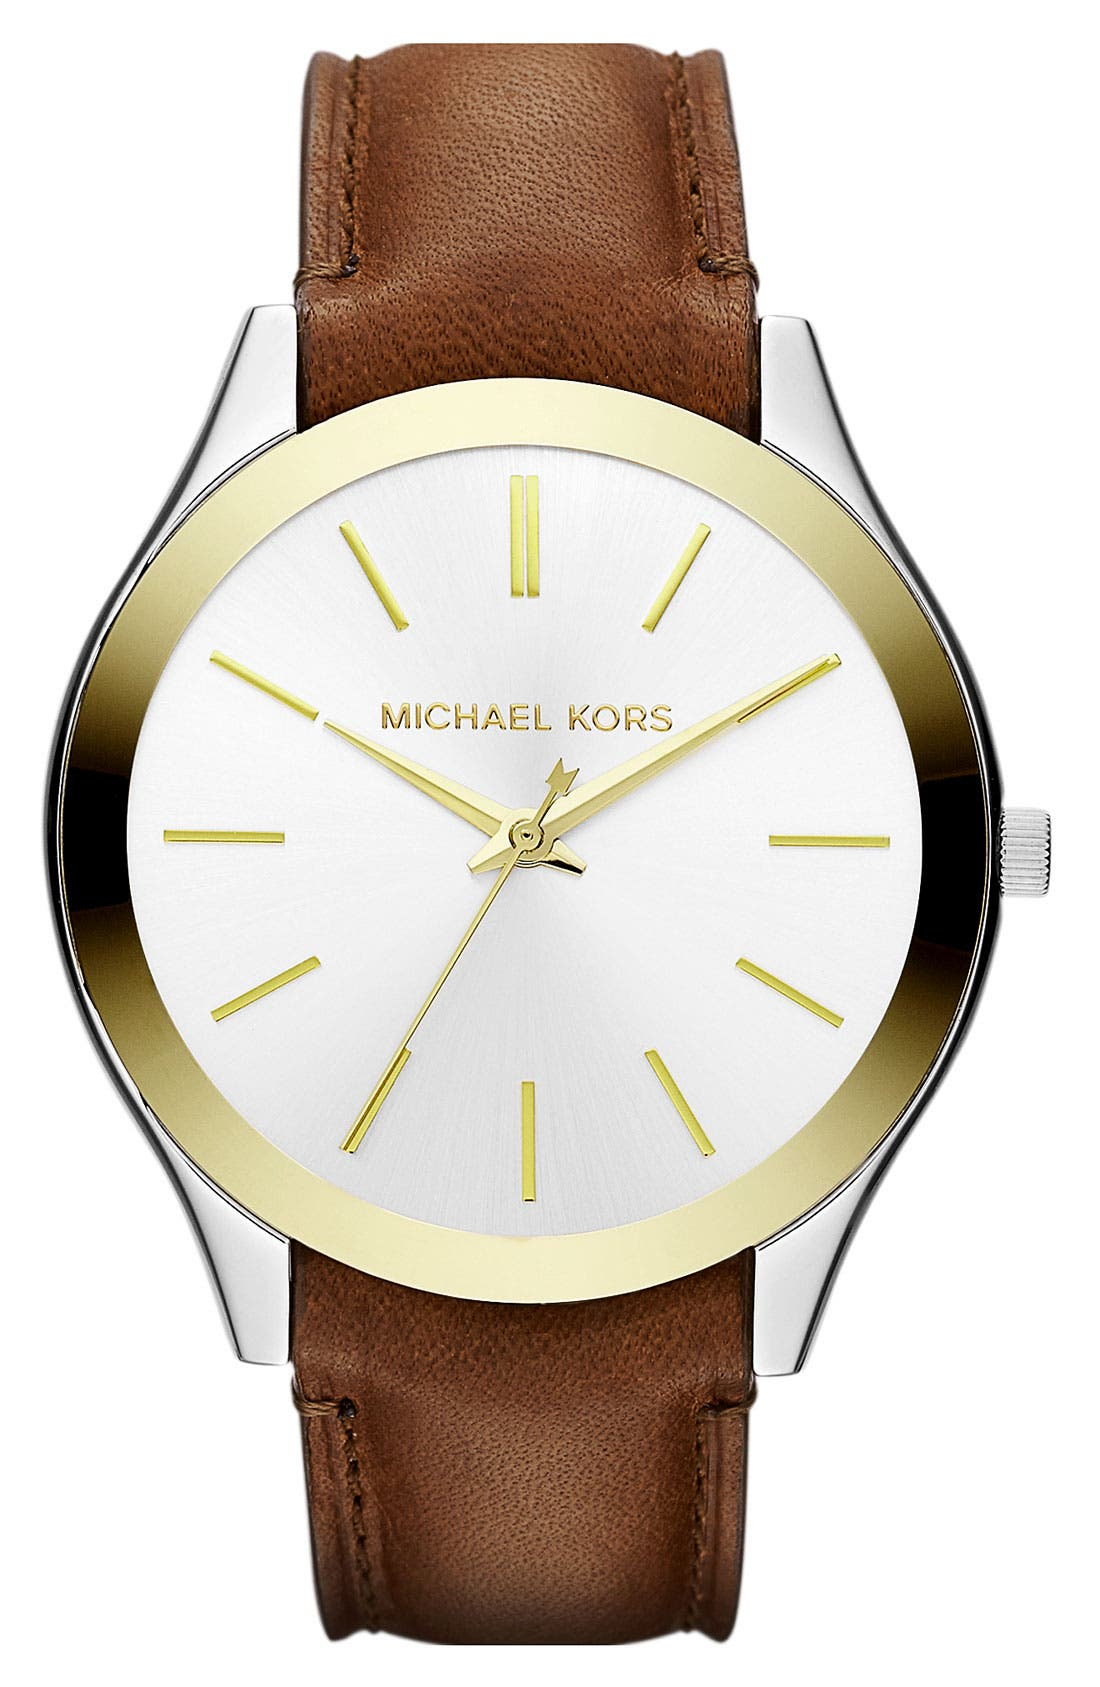 Michael Kors 'Slim Runway' Leather Strap Watch, 42mm,                         Main,                         color, Chocolate